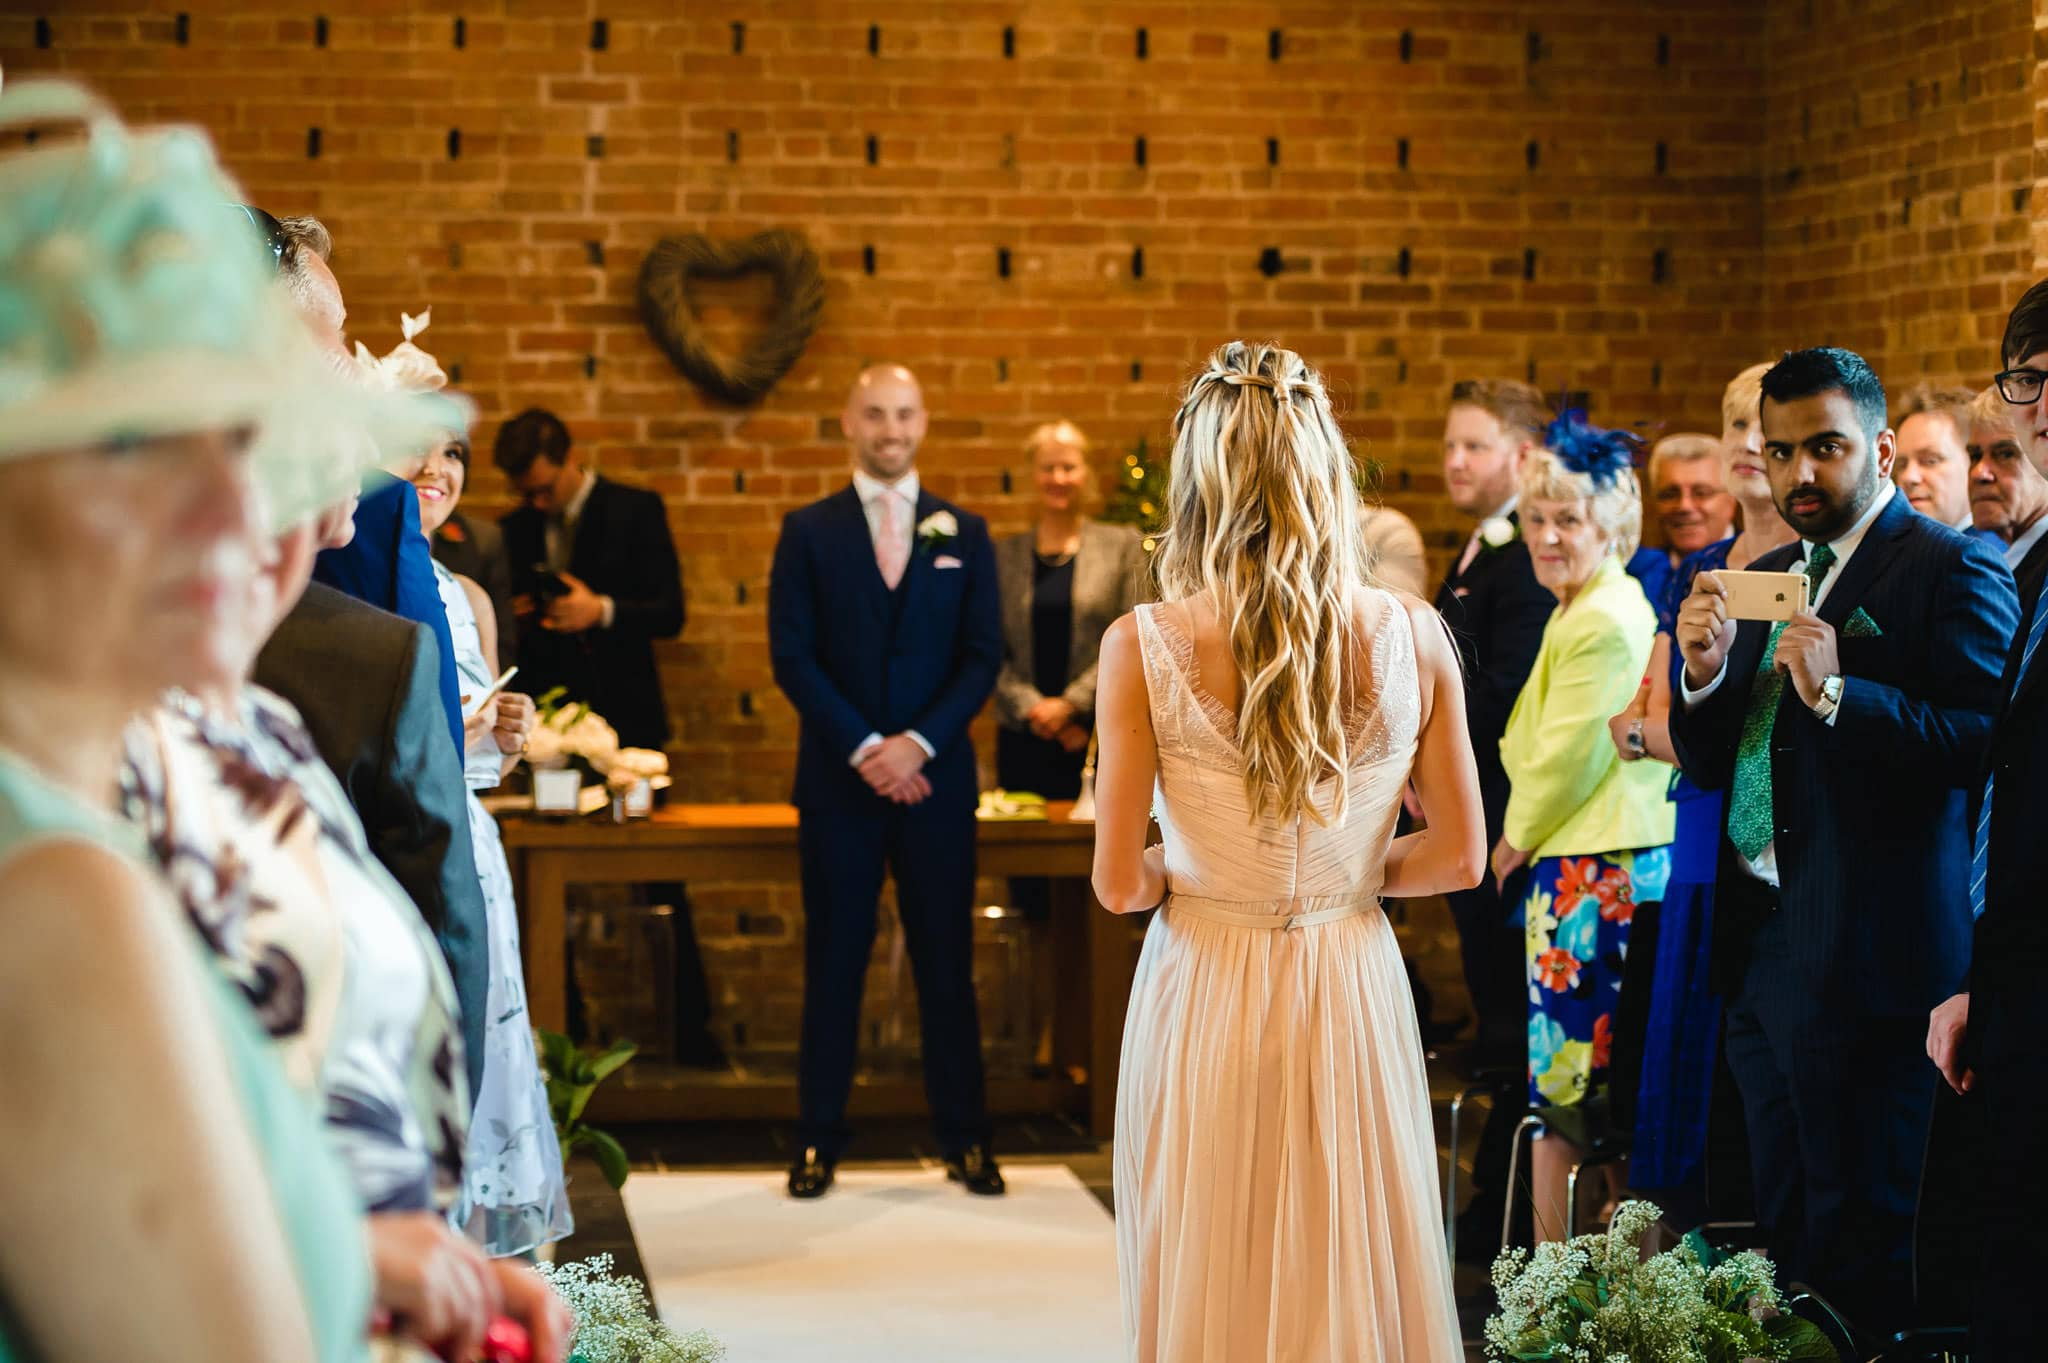 Wedding at Redhouse Barn in Stoke Prior, Worcestershire 60